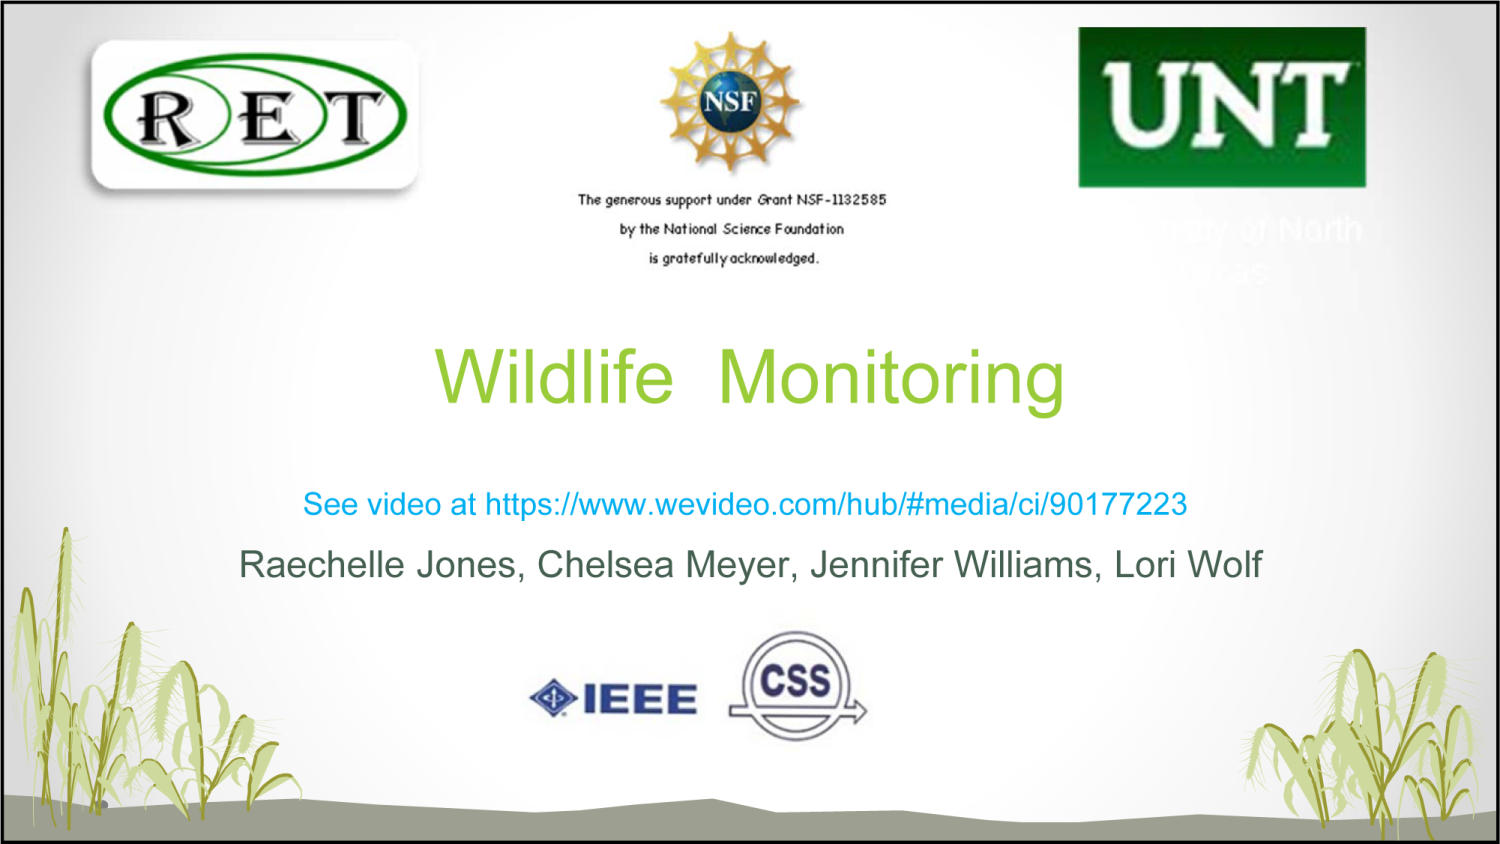 Wildlife Monitoring                                                                                                      [Sequence #]: 1 of 19